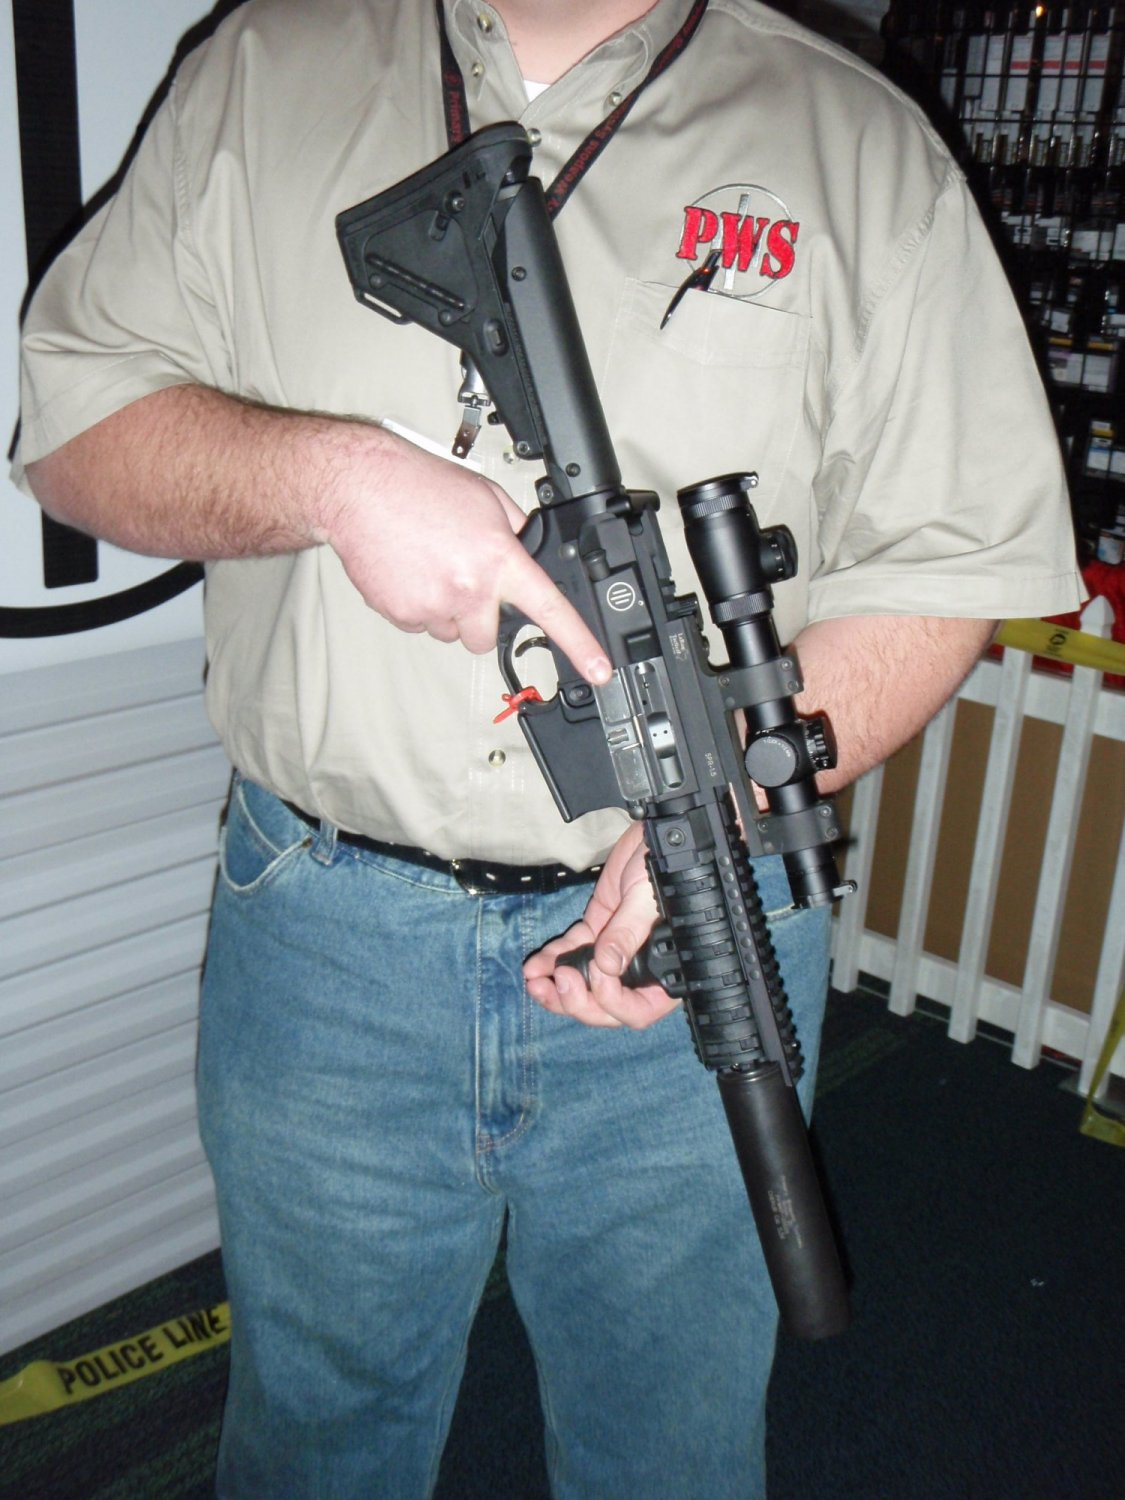 PWS Gas Piston SBR Suppressed SHOT Show 2009 1 <!  :en  >PWS Diablo Long Stroke Gas Piston/Op Rod Driven 5.56mm AR 15 SBR Upper Receiver<!  :  >